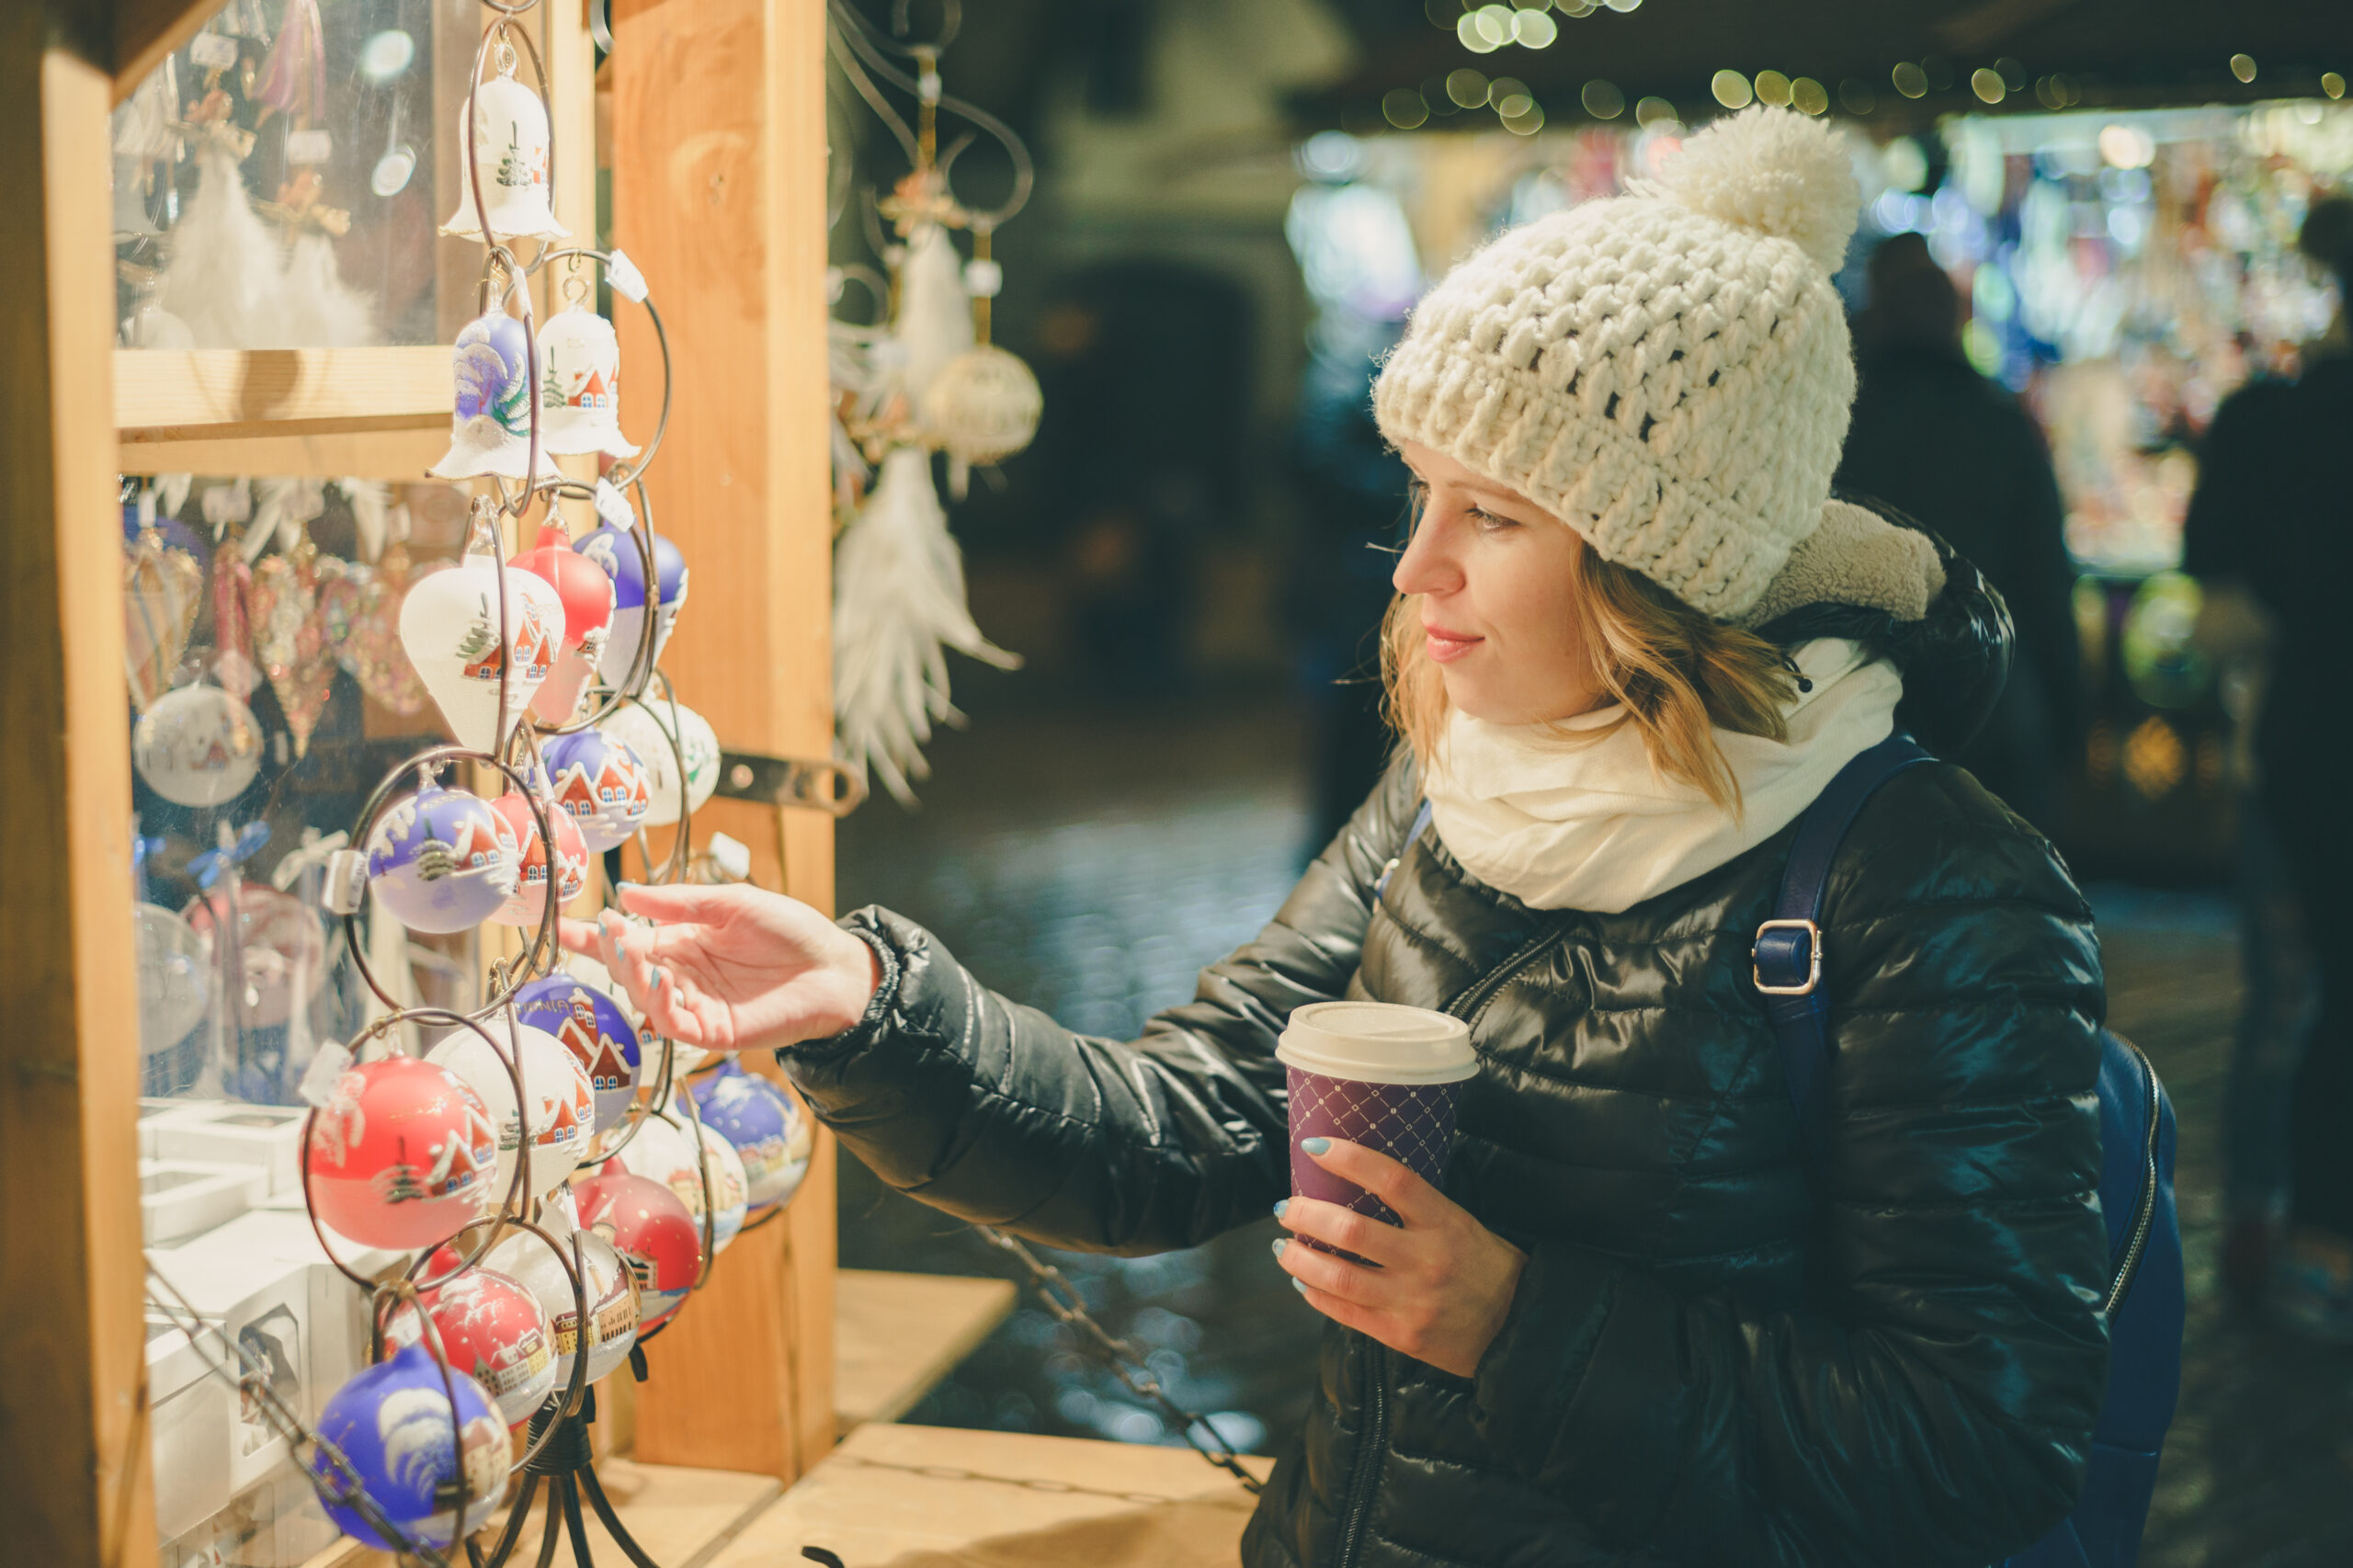 Photo of a woman looking at Christmas ornaments.